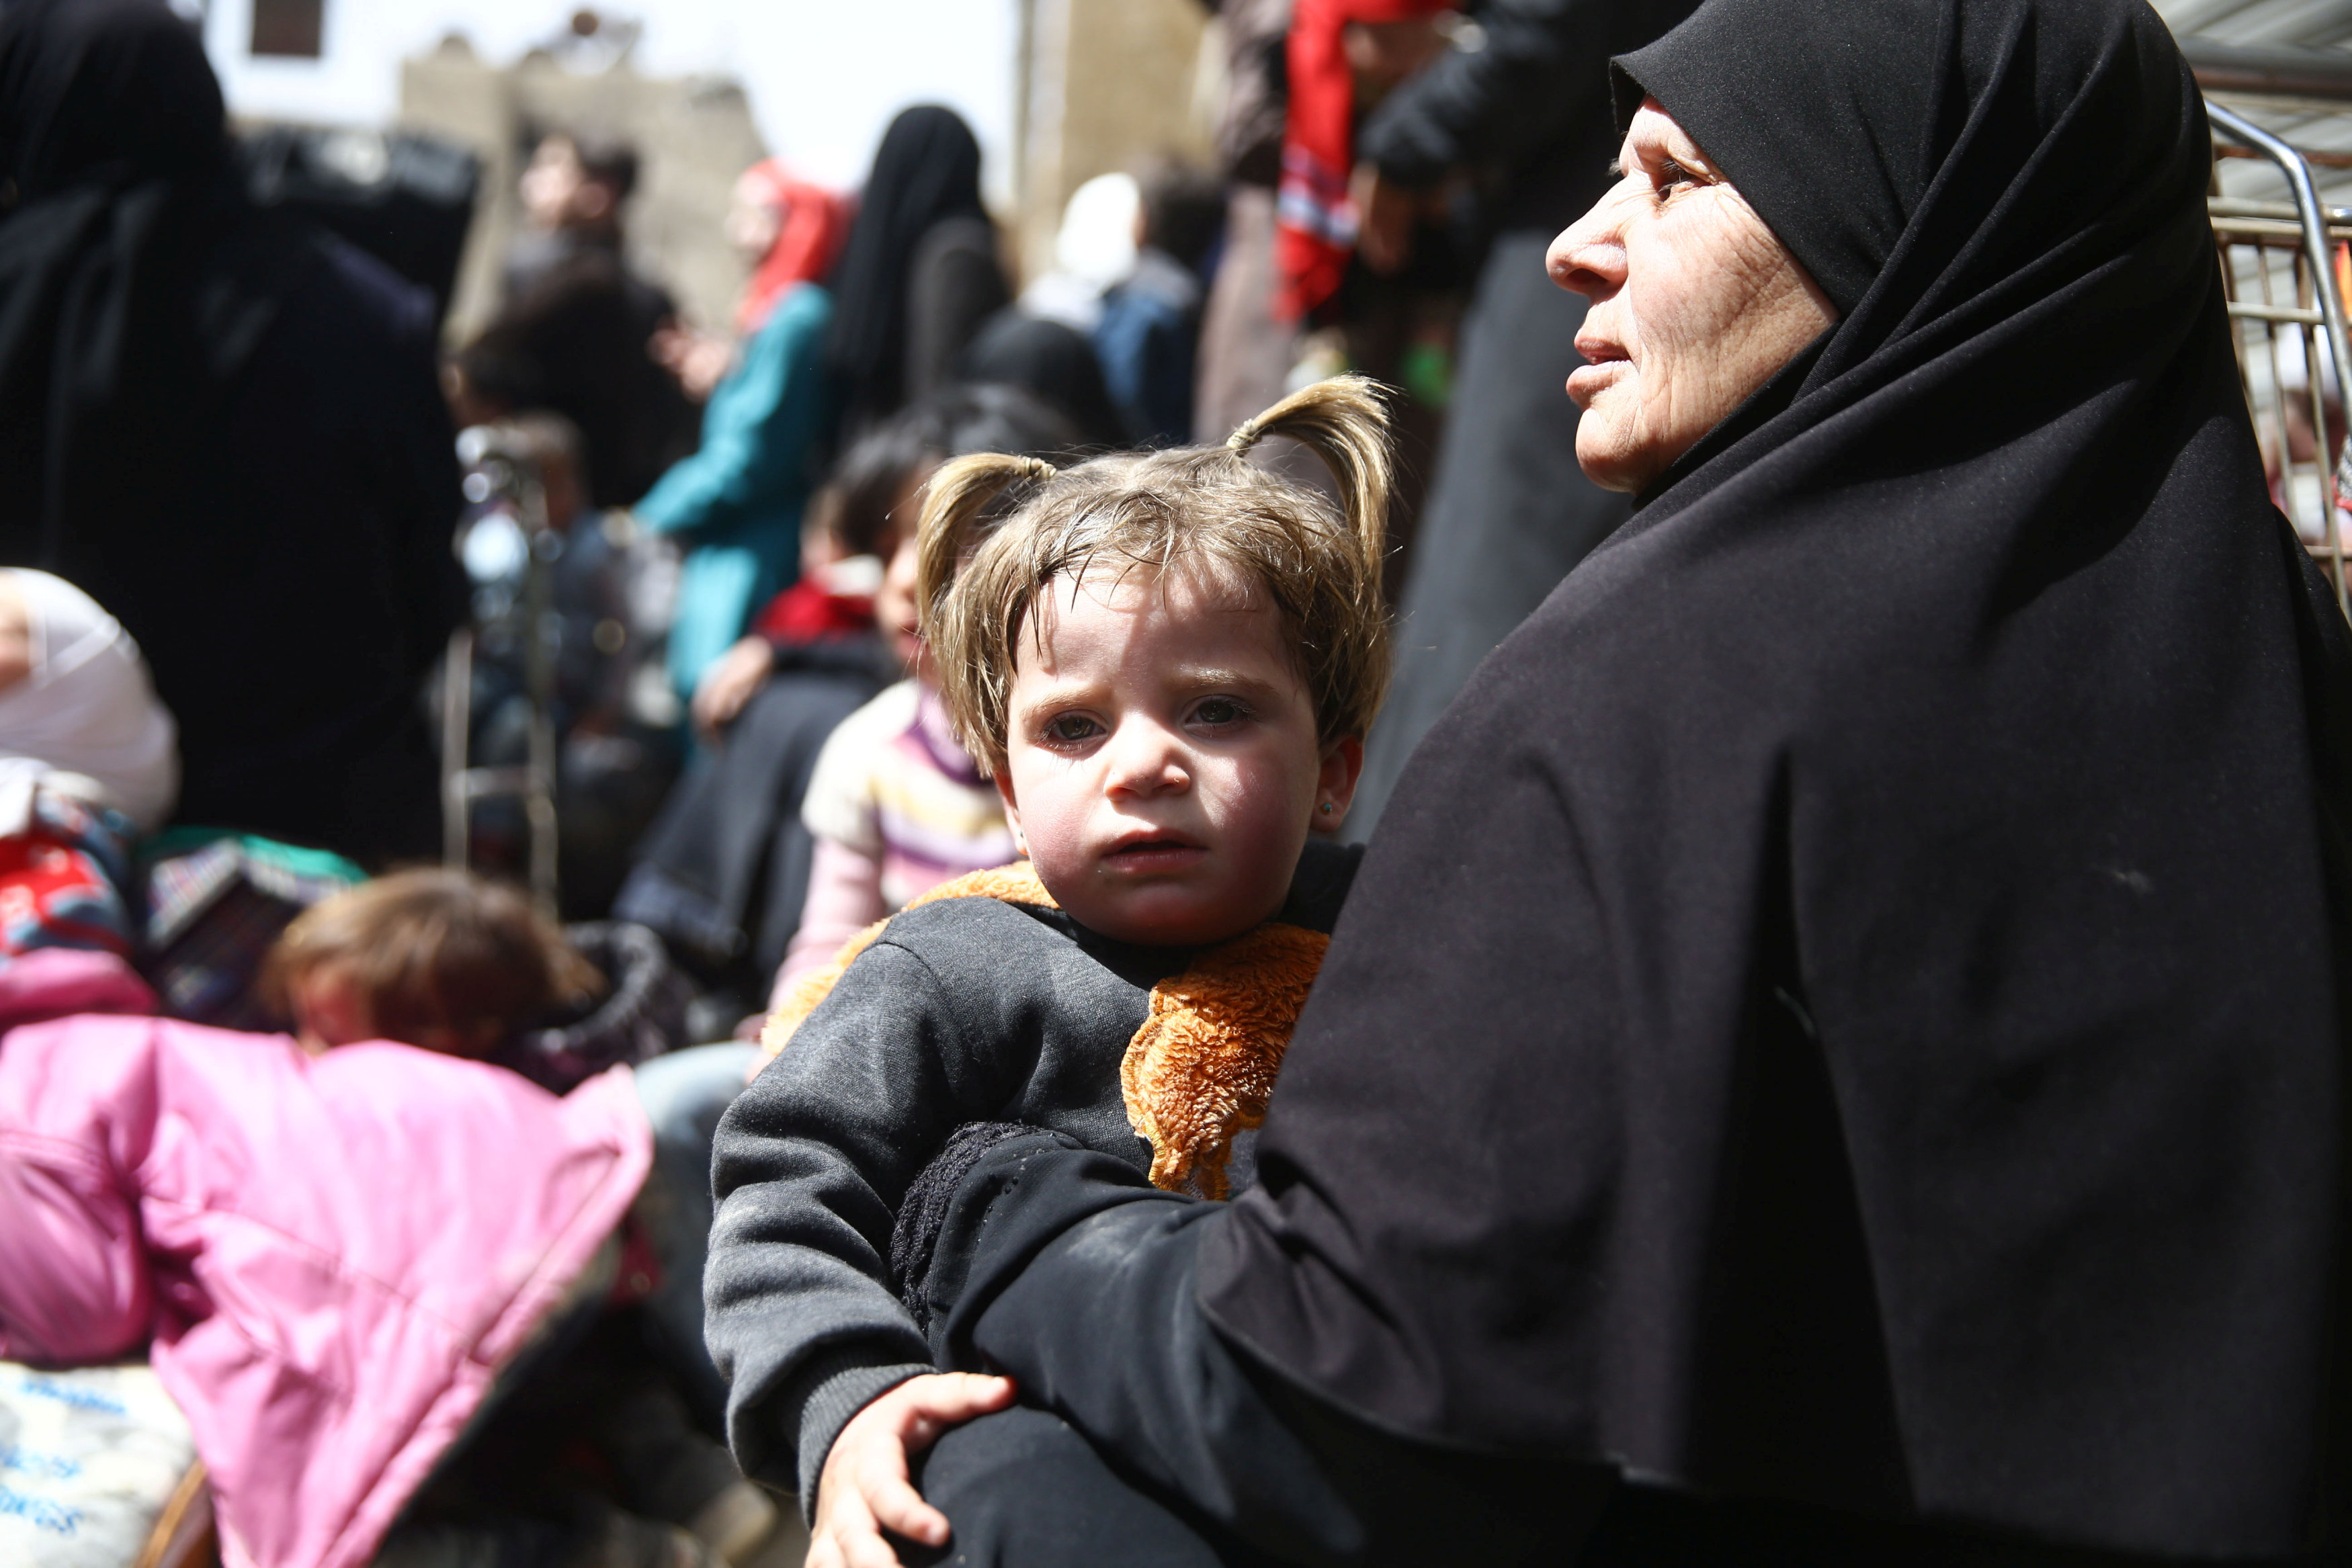 A woman holds a child during evacuation from the besieged town of Douma, Eastern Ghouta, in Damascus, Syria March 22, 2018. REUTERS/Bassam Khabieh